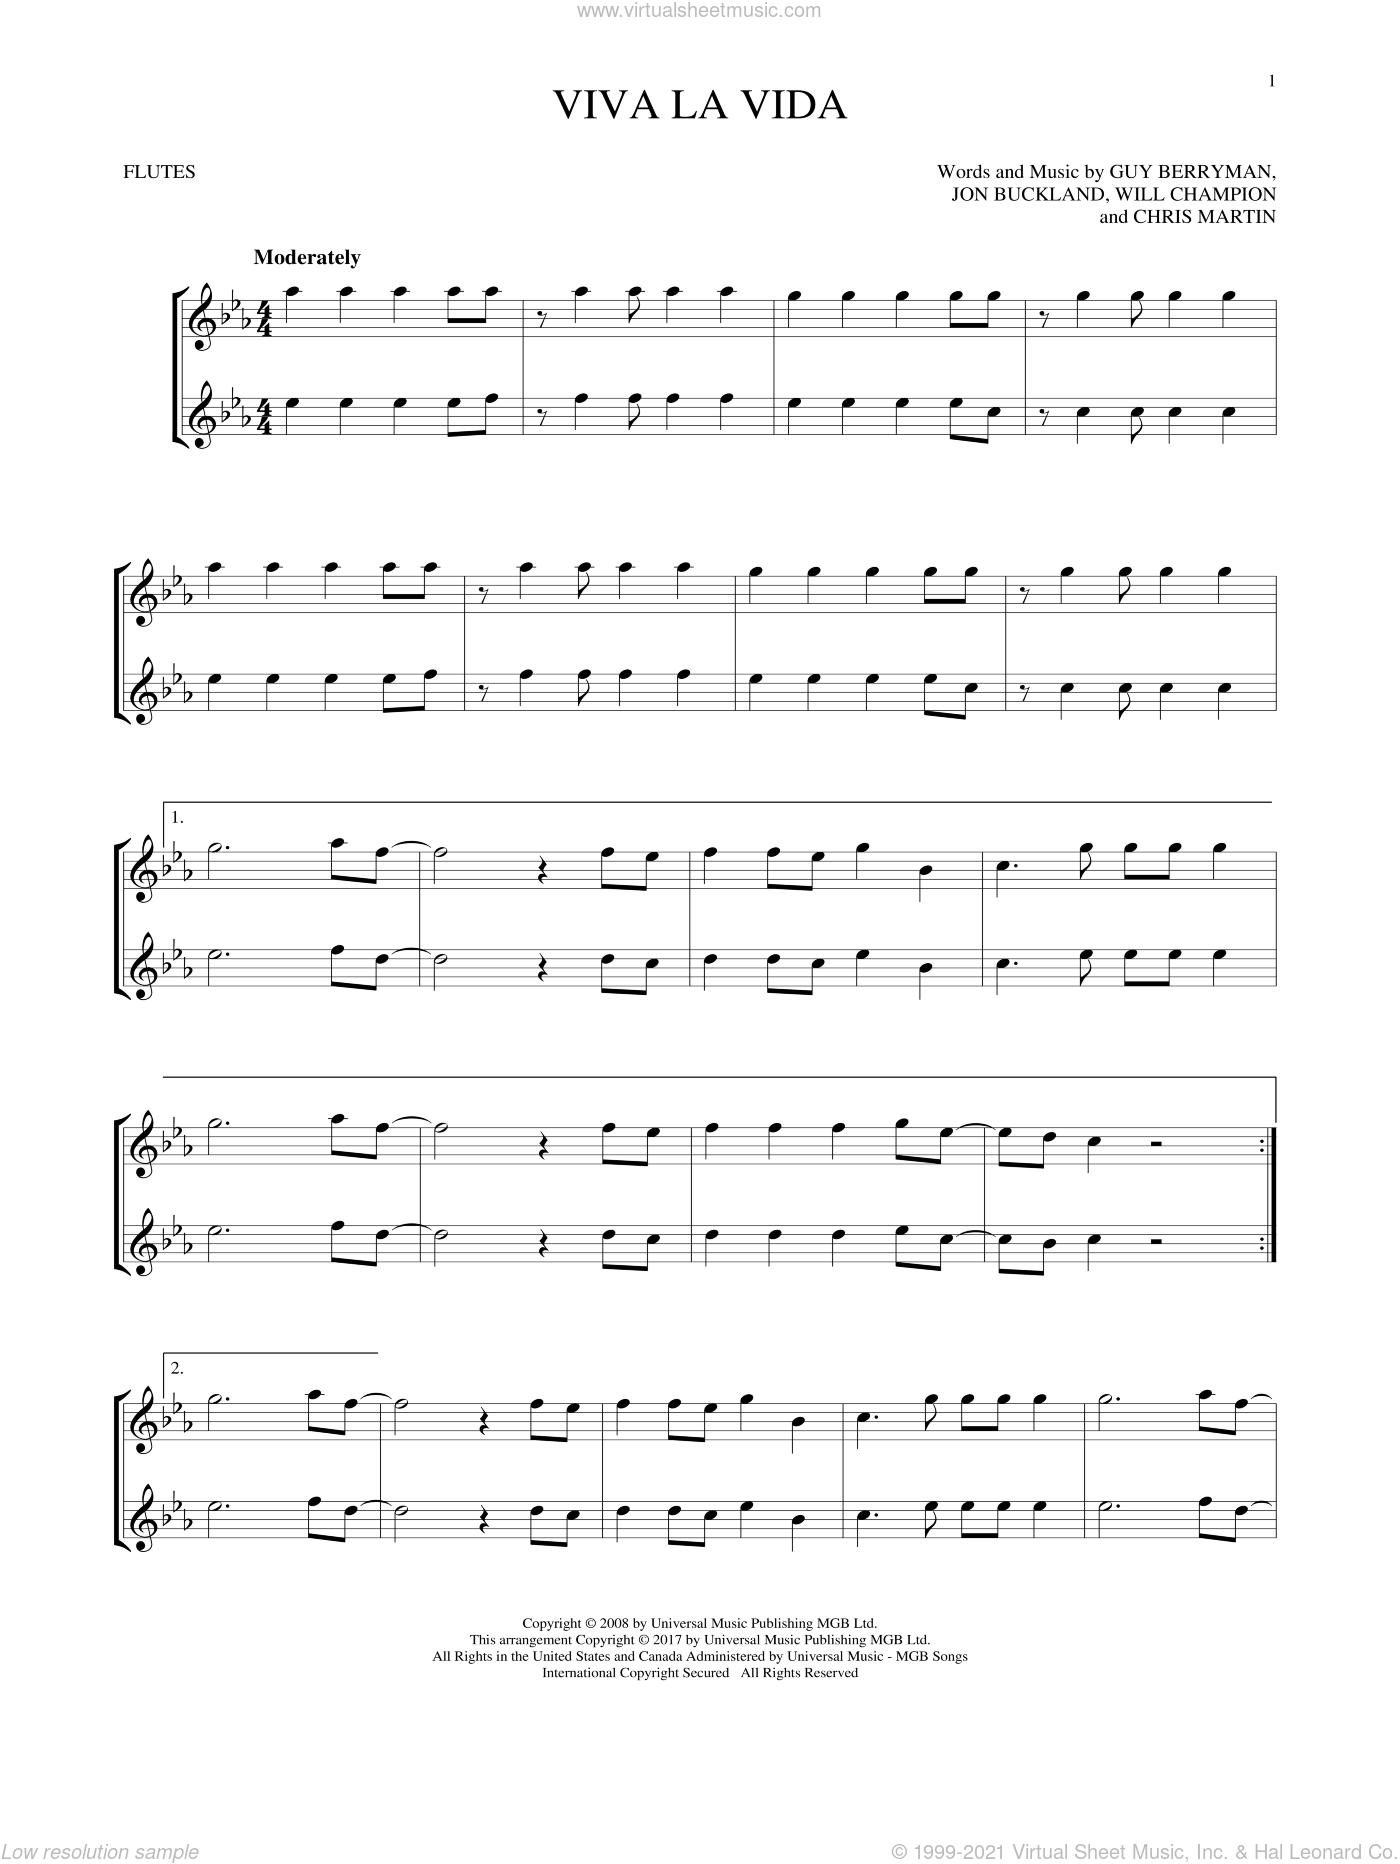 Viva La Vida sheet music for two flutes (duets) by Chris Martin, Coldplay, Guy Berryman, Jon Buckland and Will Champion, intermediate skill level